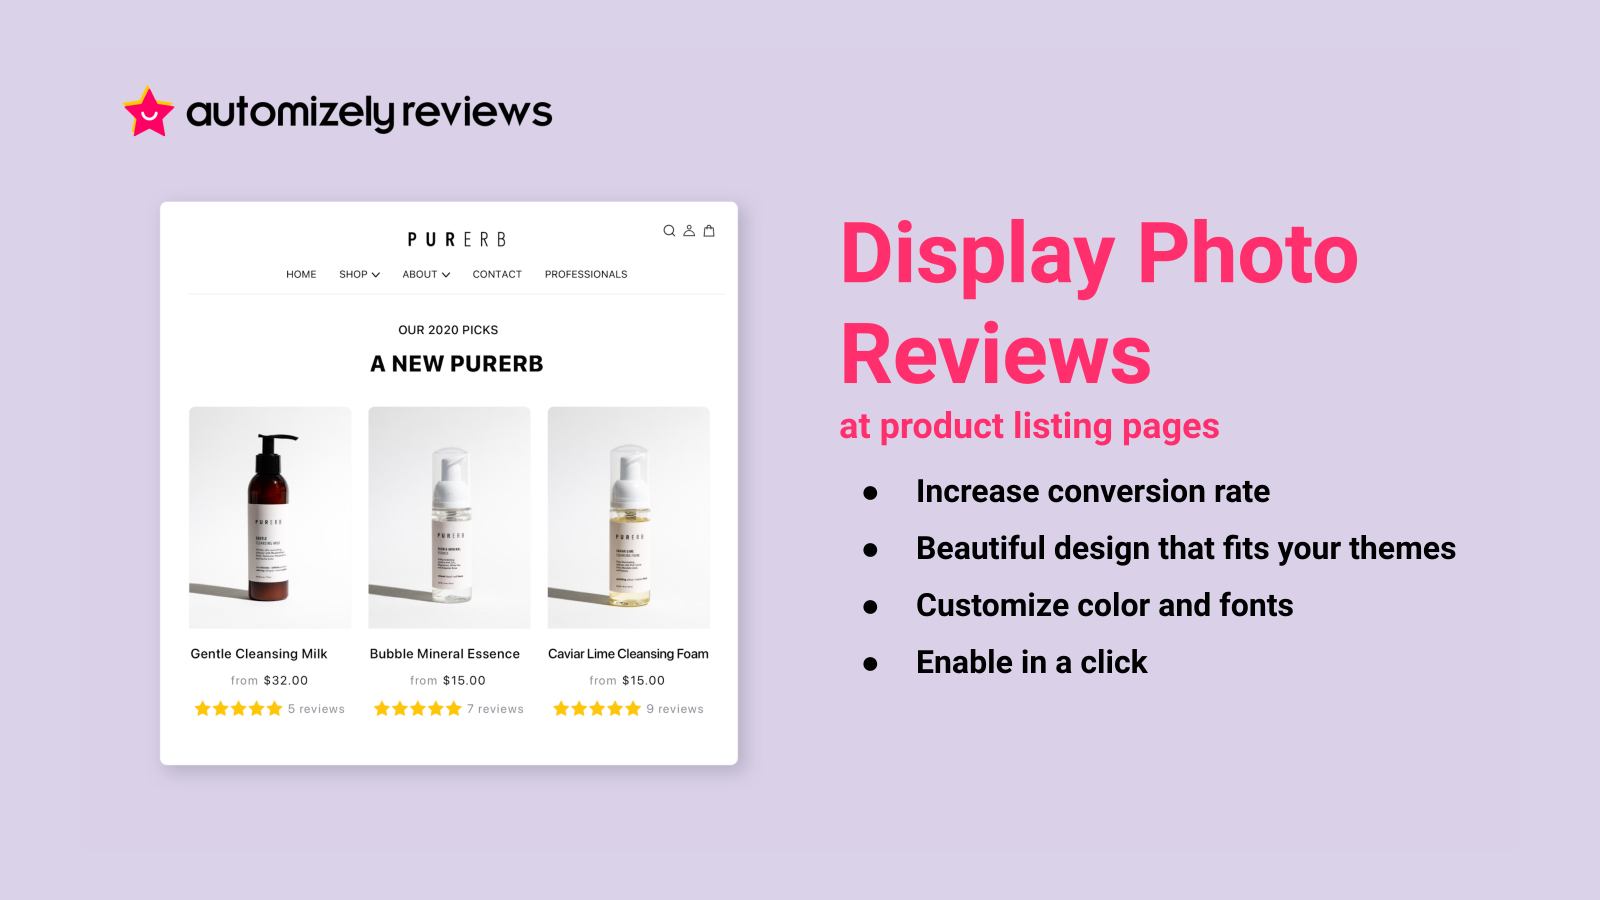 Display photo reviews at product listing pages